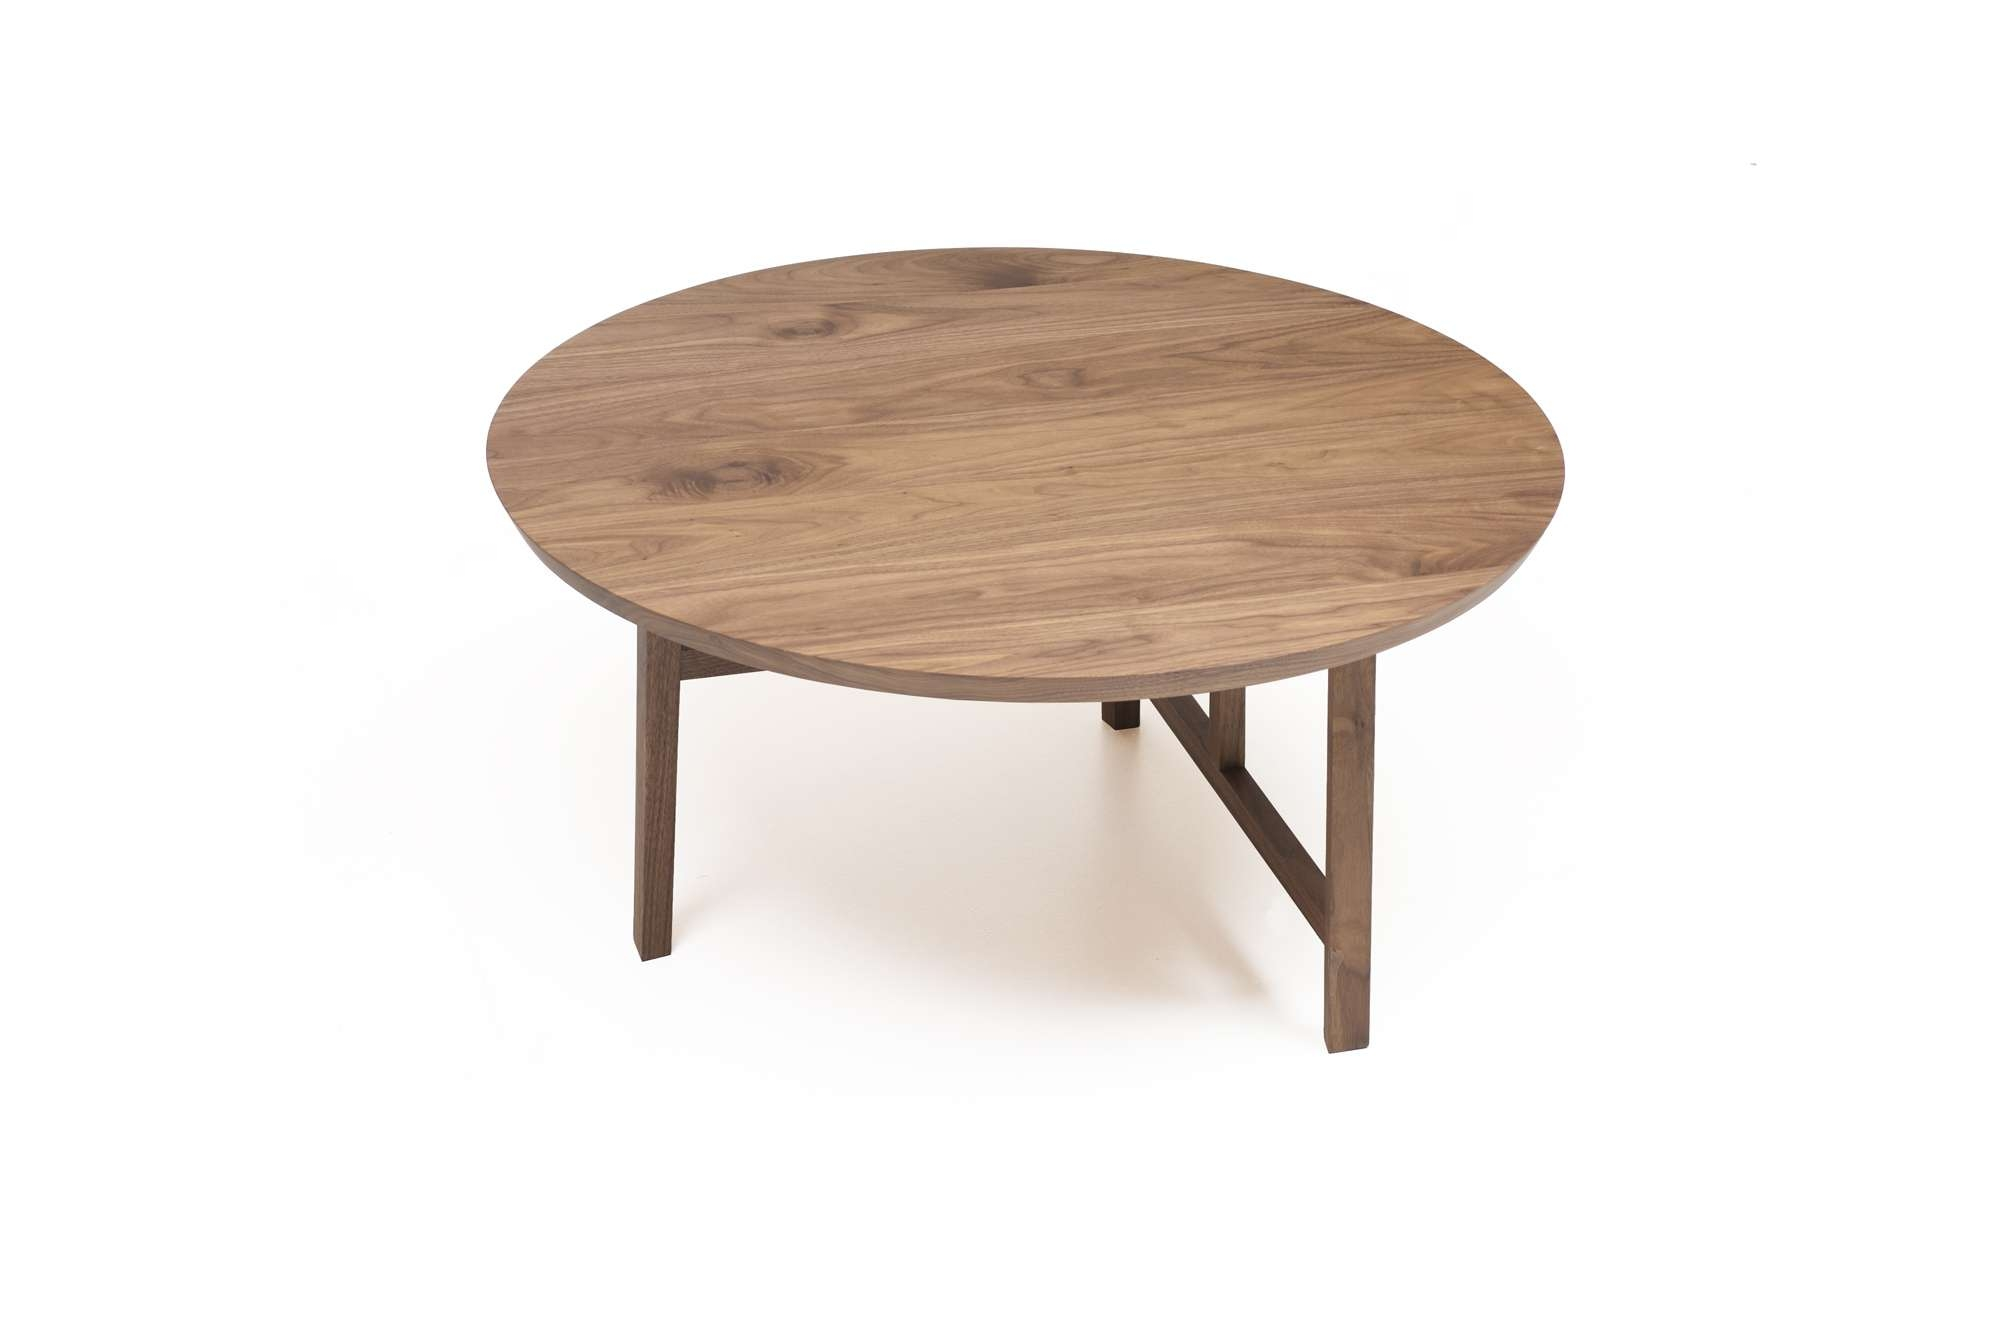 Small Circular Coffee Table – Round Shaped Coffee Table, Thick Within Most Up To Date Small Circular Coffee Table (View 12 of 20)